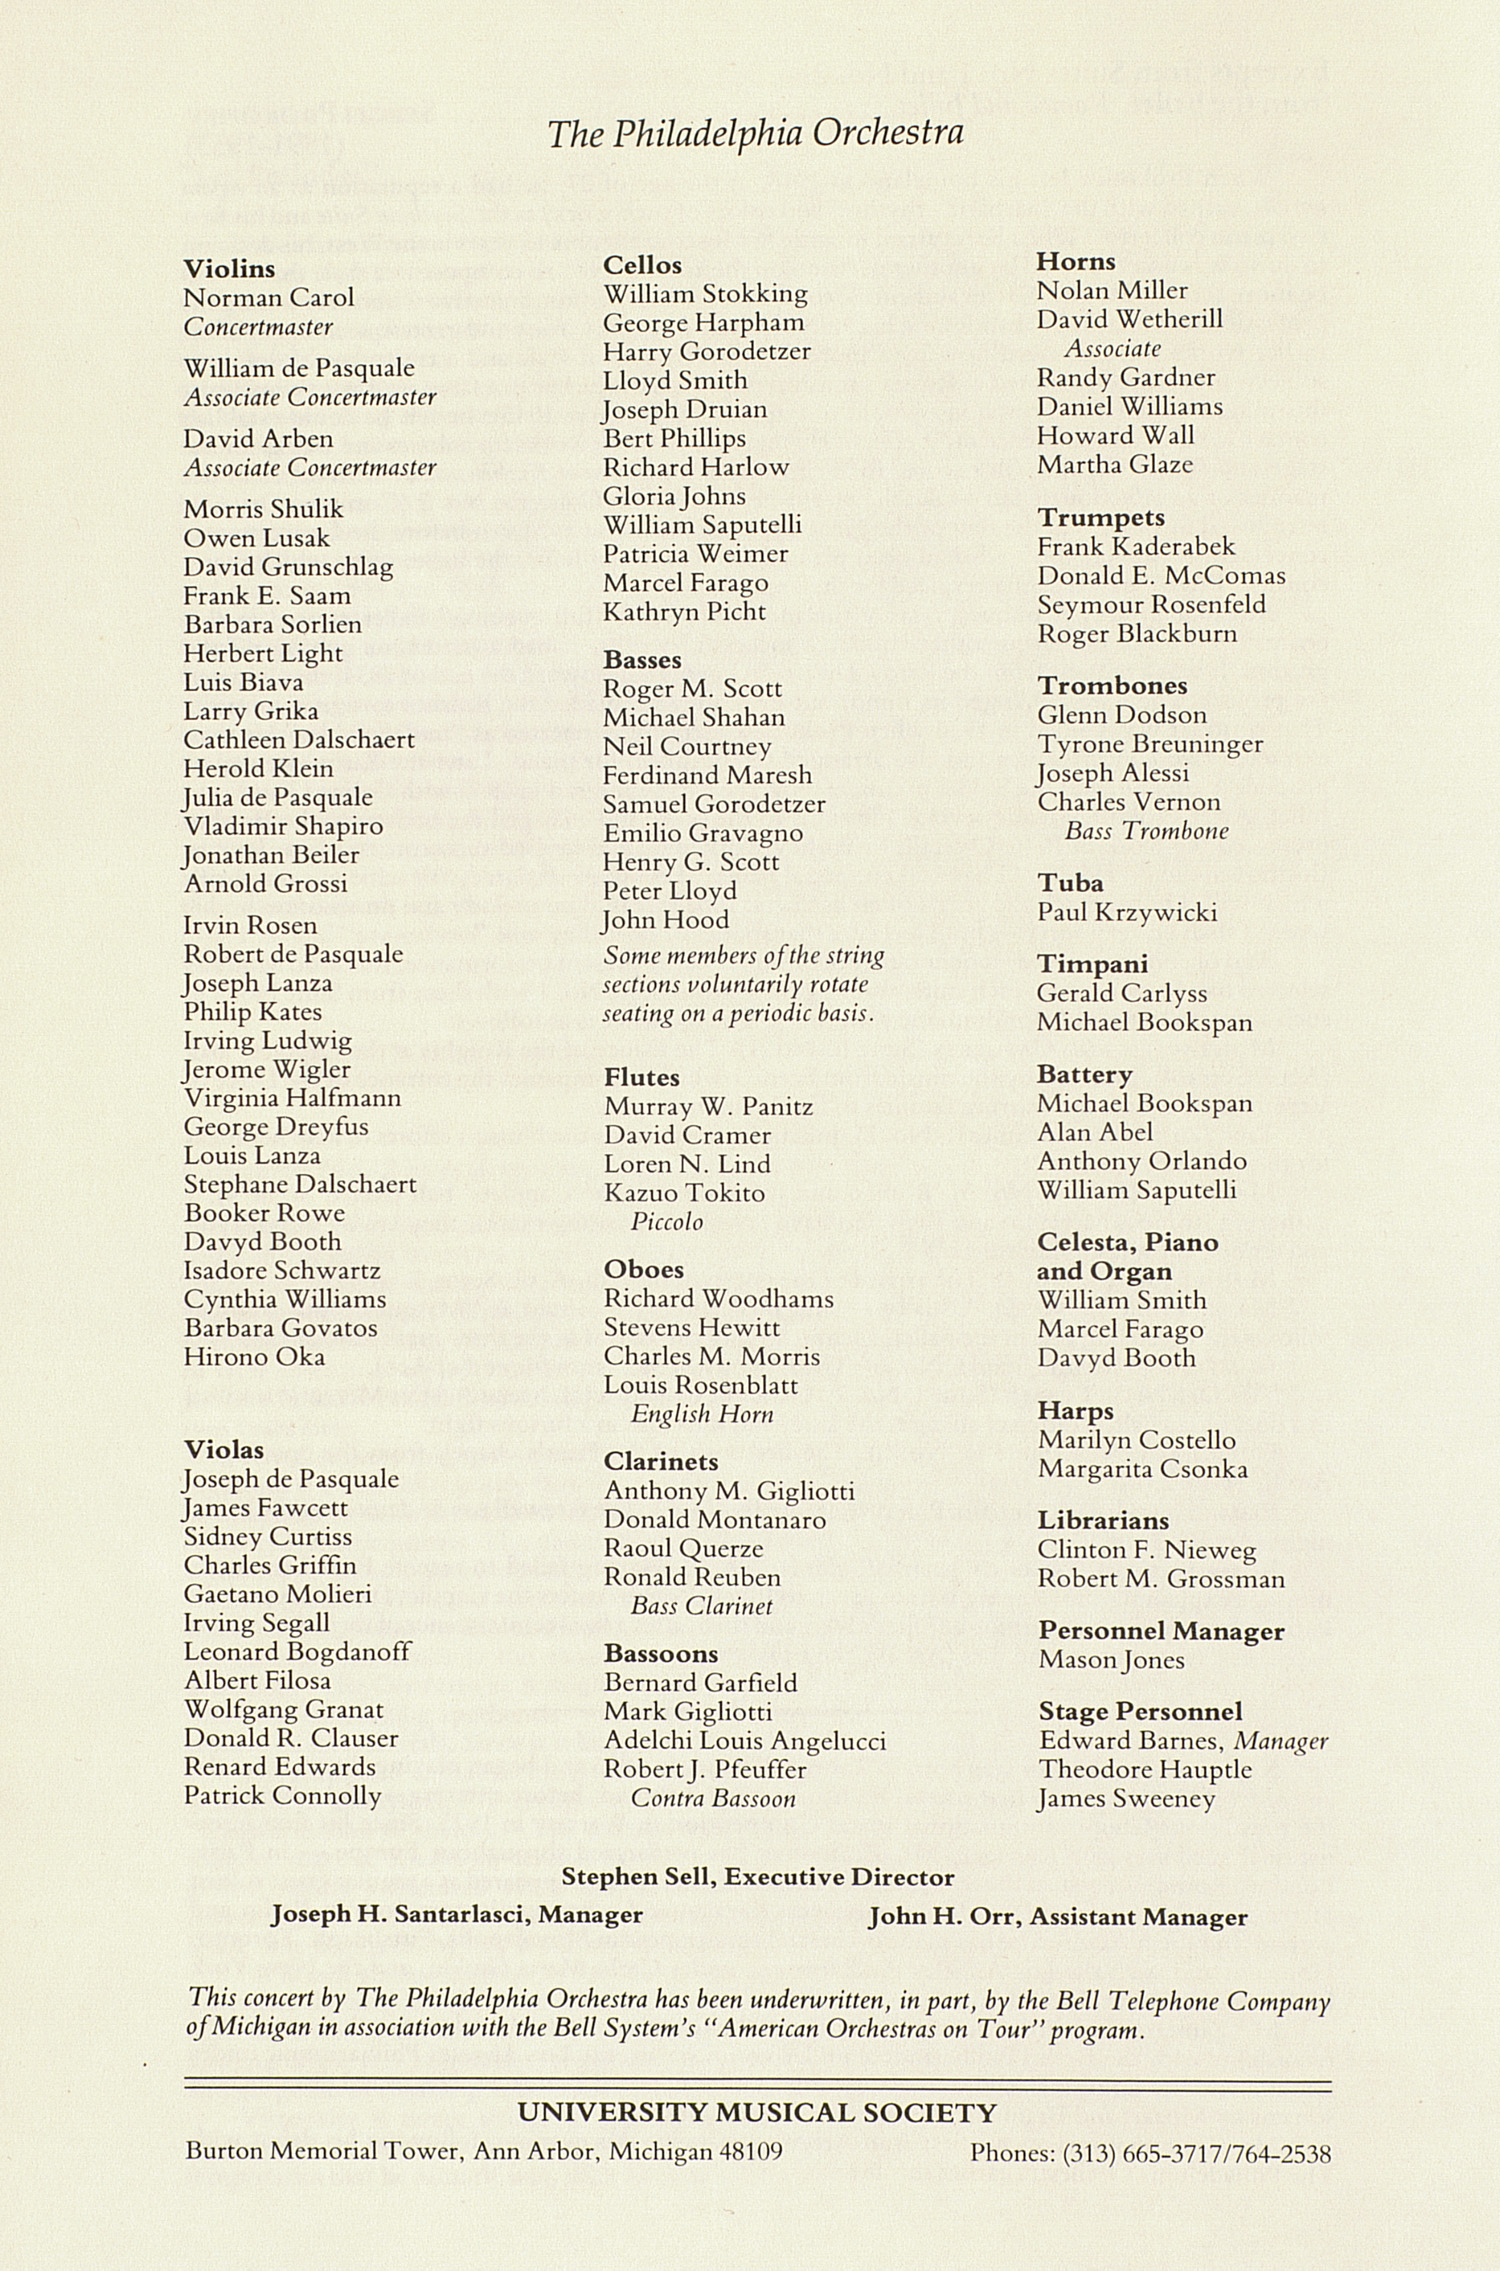 UMS Concert Program, April 27, 1983: Ninetieth Ann Arbor May Festival 1983 -- The Philadelphia Orchestra image